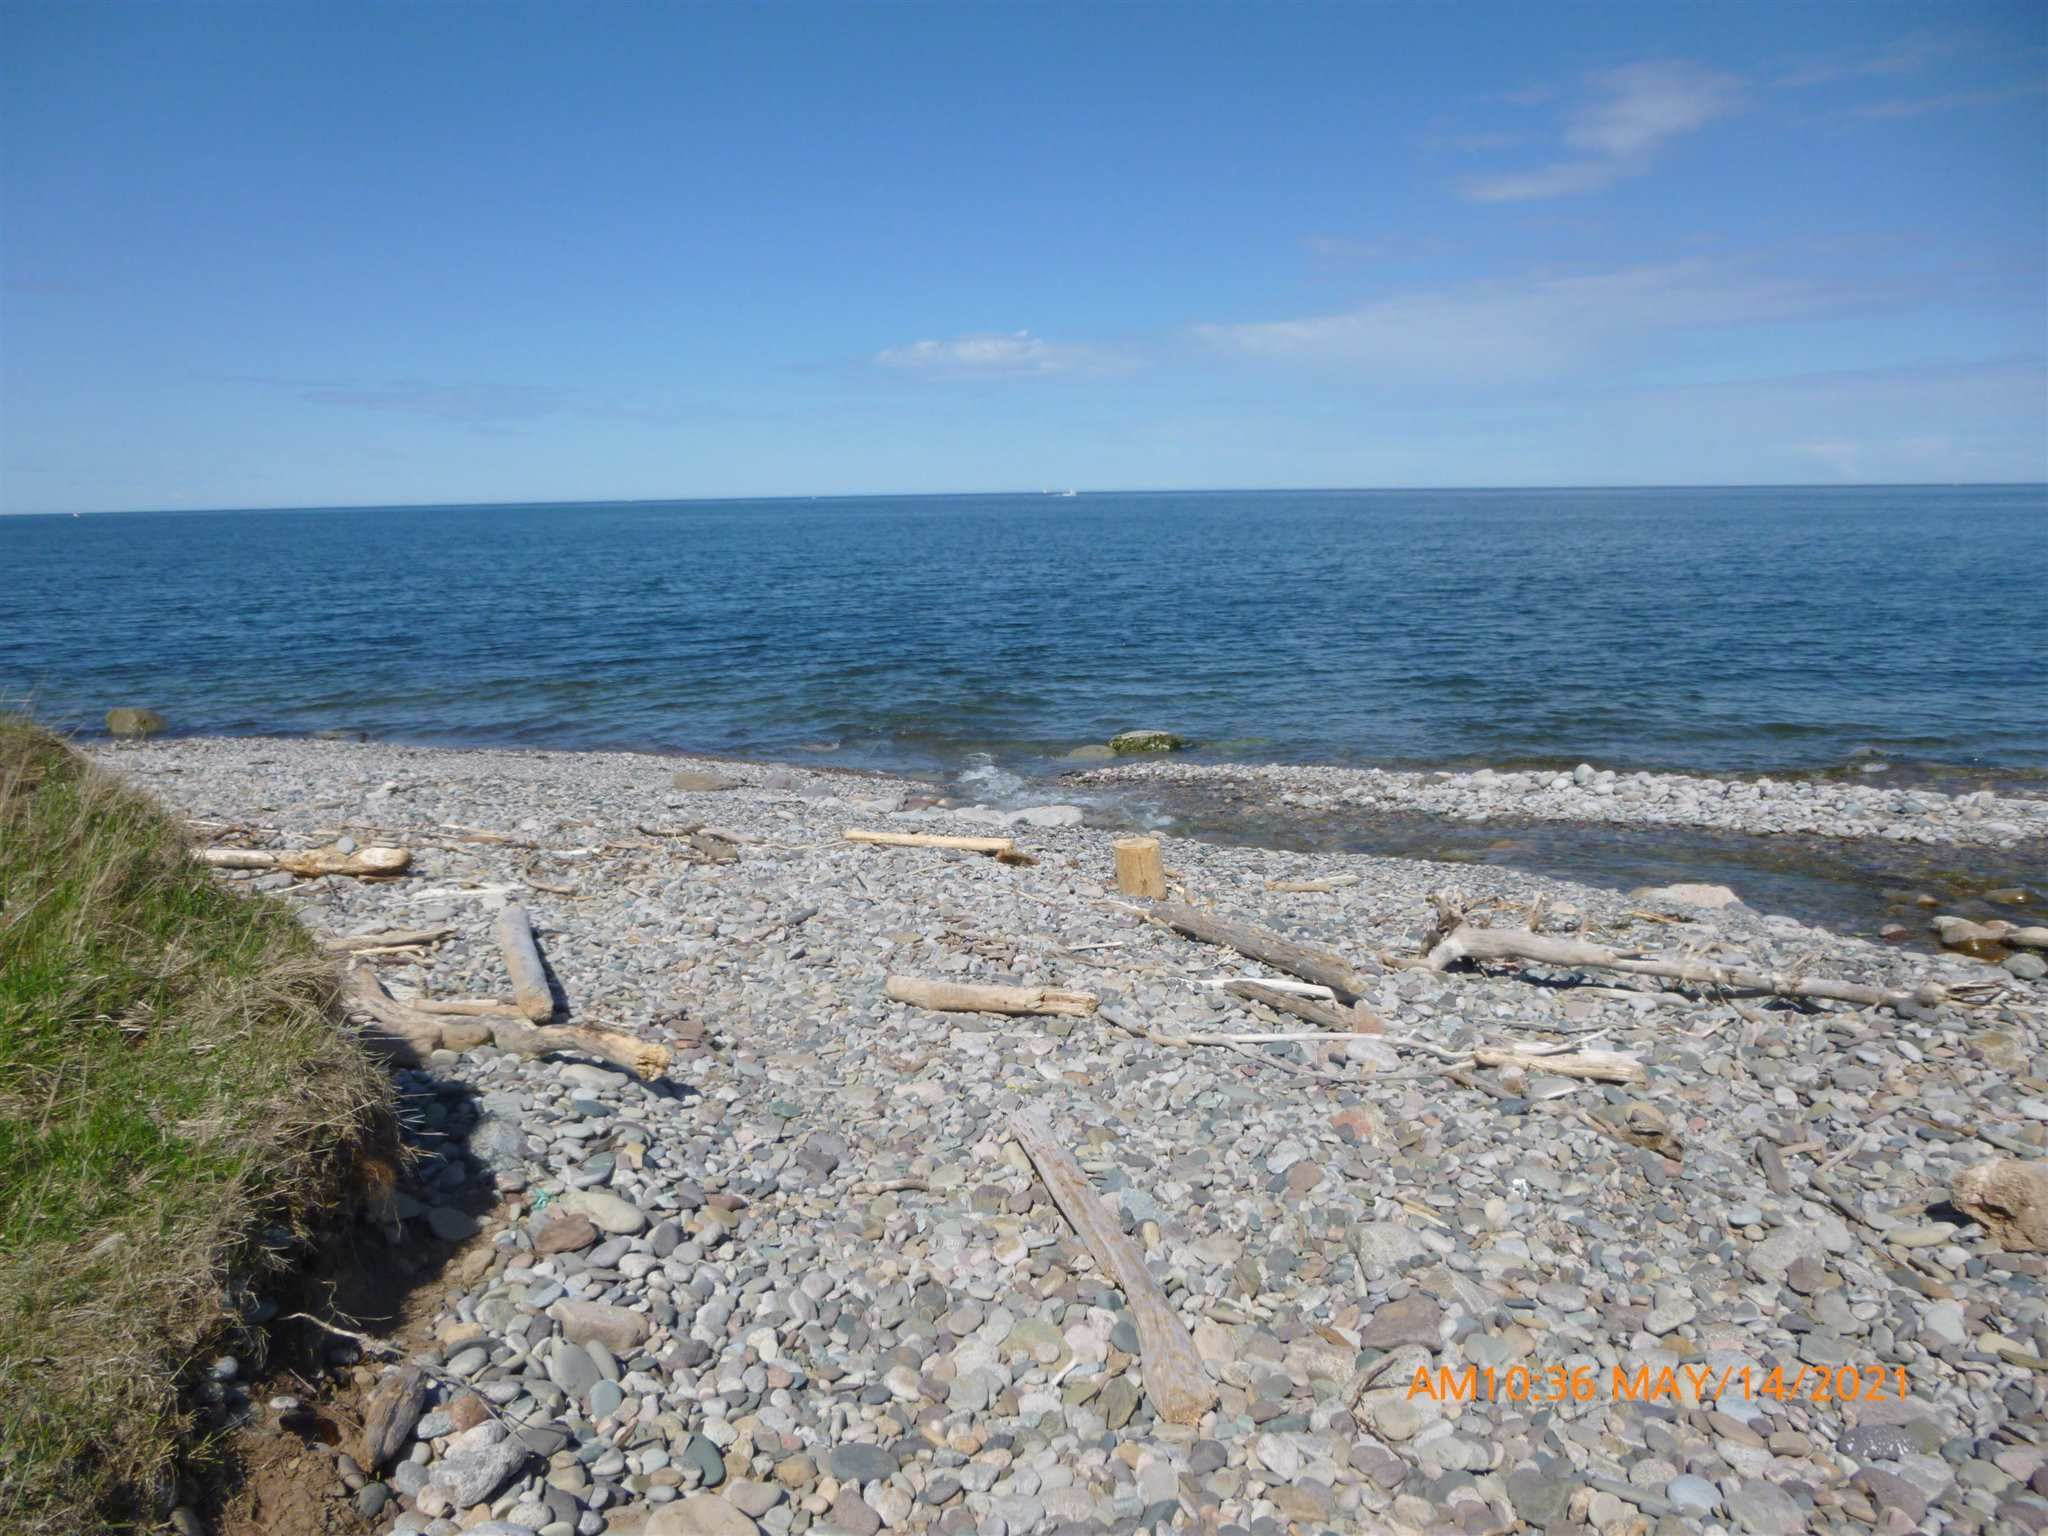 Main Photo: Lot 1 Old Cabot Trail Road in Point Cross: 306-Inverness County / Inverness & Area Vacant Land for sale (Highland Region)  : MLS®# 202111357